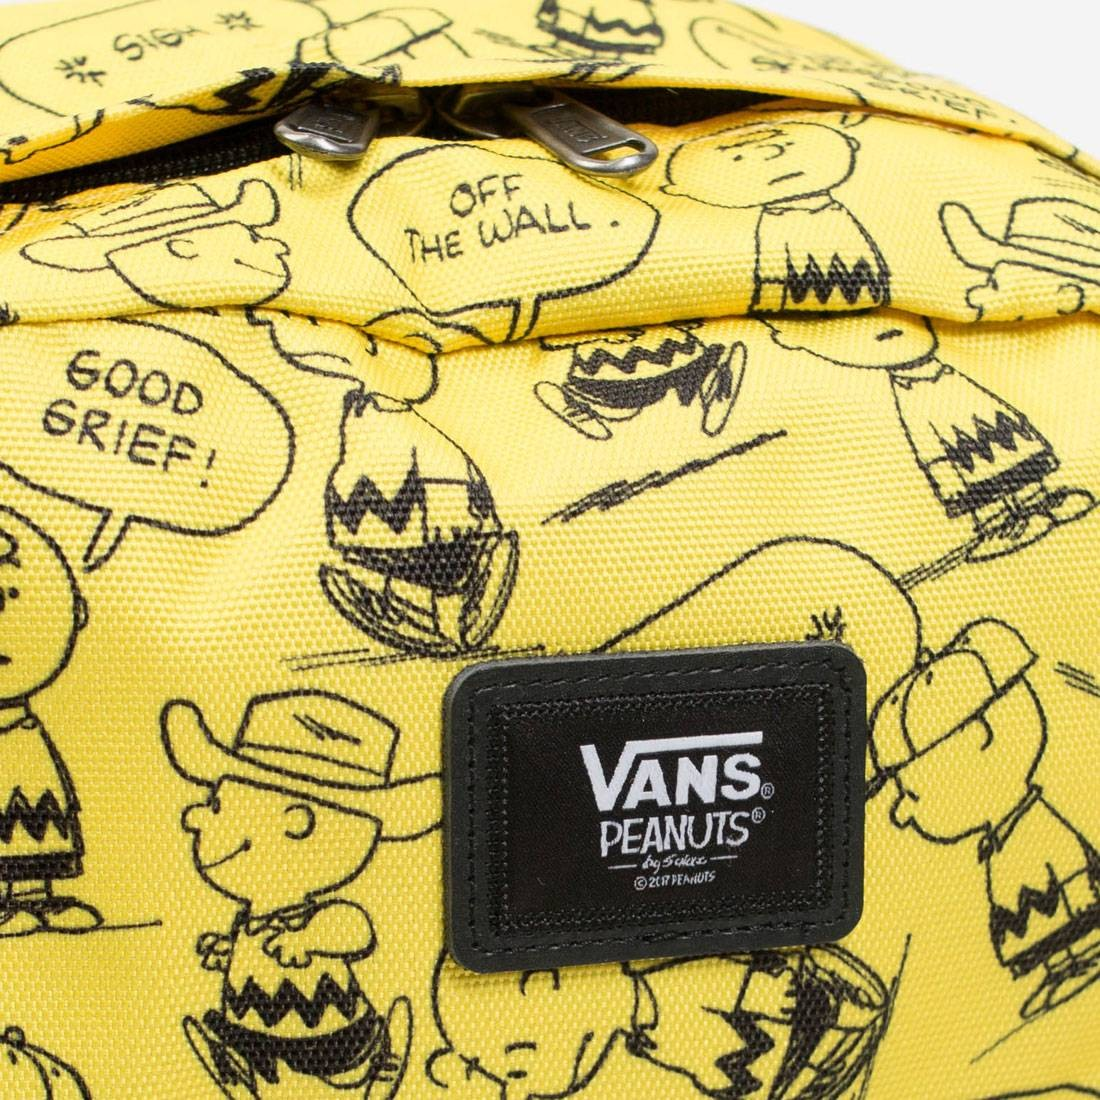 47b8c5a4cf Vans x Snoopy Peanuts Old Skool II Backpack (yellow   black)